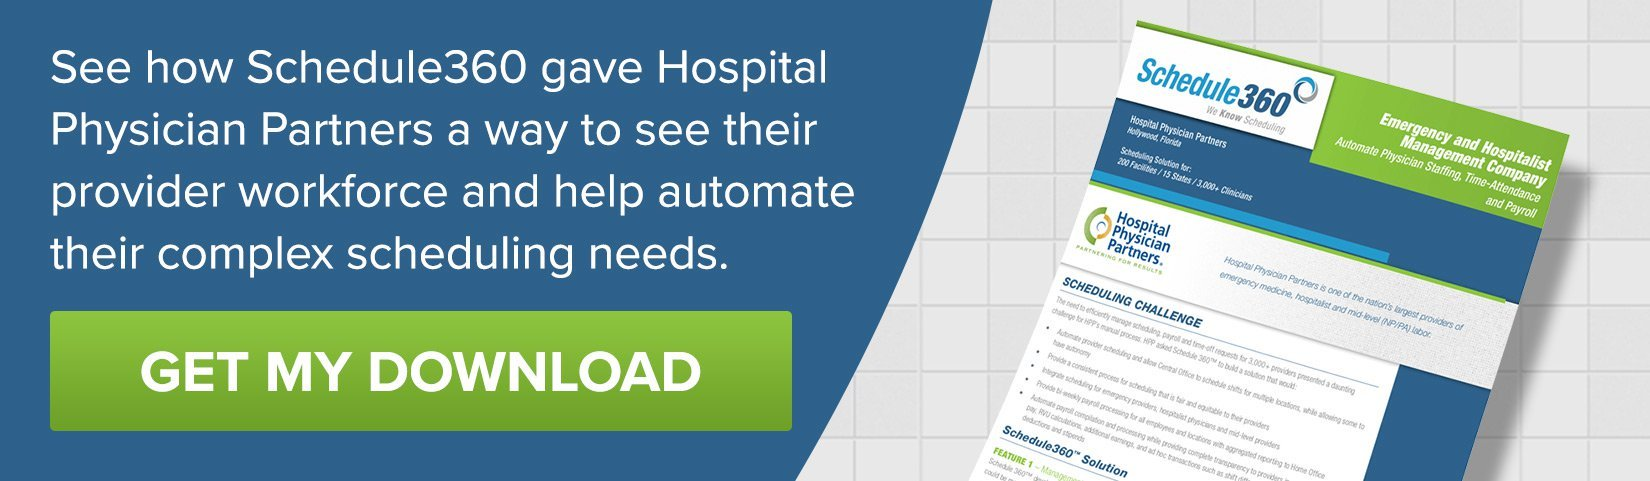 See how Schedule360 gave Hospital Physician Partners a way to see their provider workforce and help automate their complex scheduling needs.